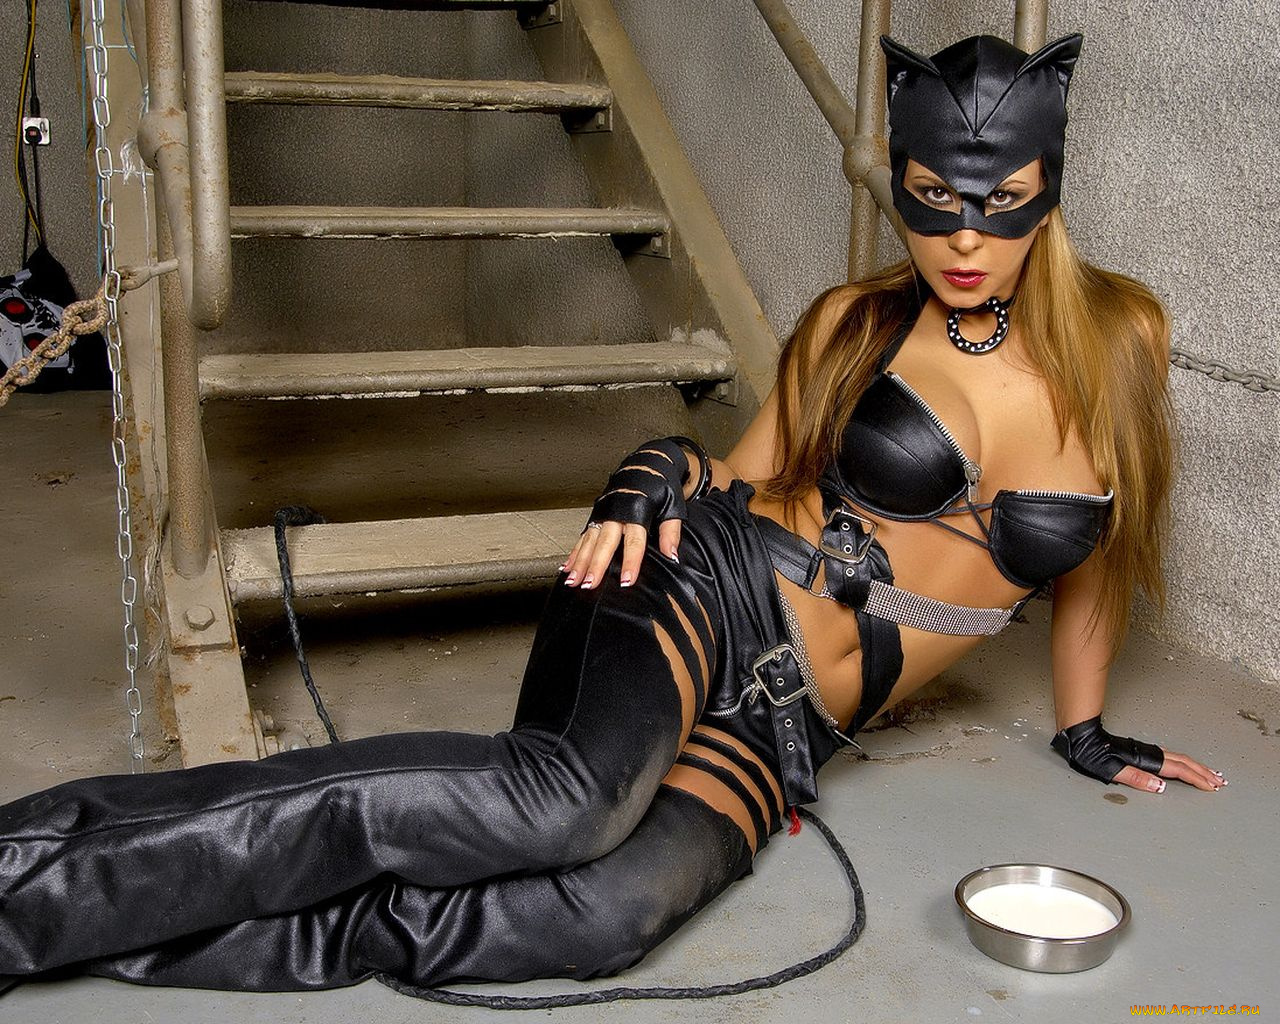 Catwoman babe nude gallery sexy pictures